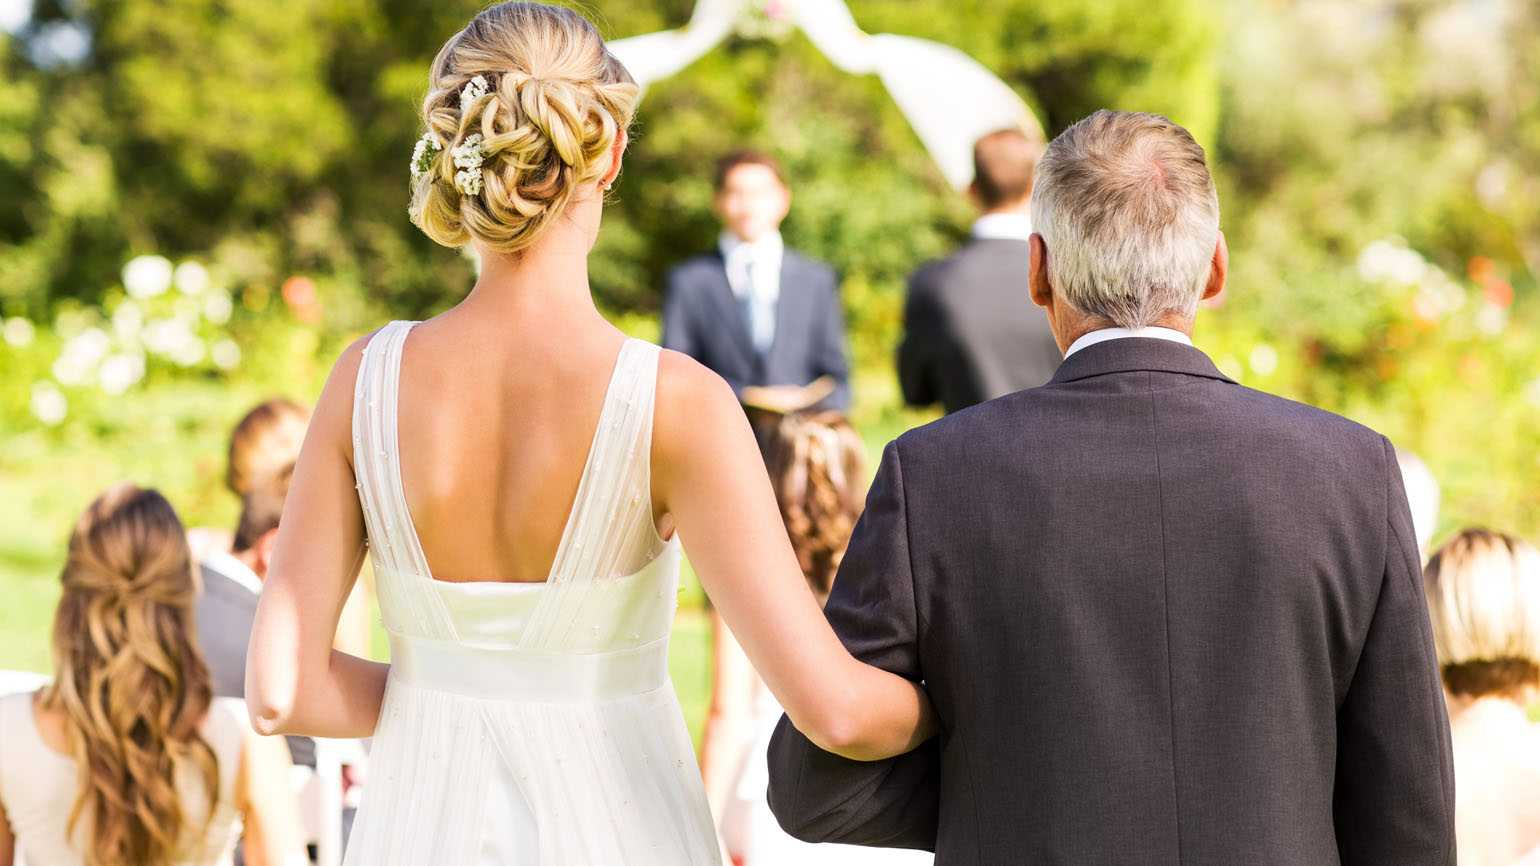 A father walking his daughter down the aisle on her wedding day.